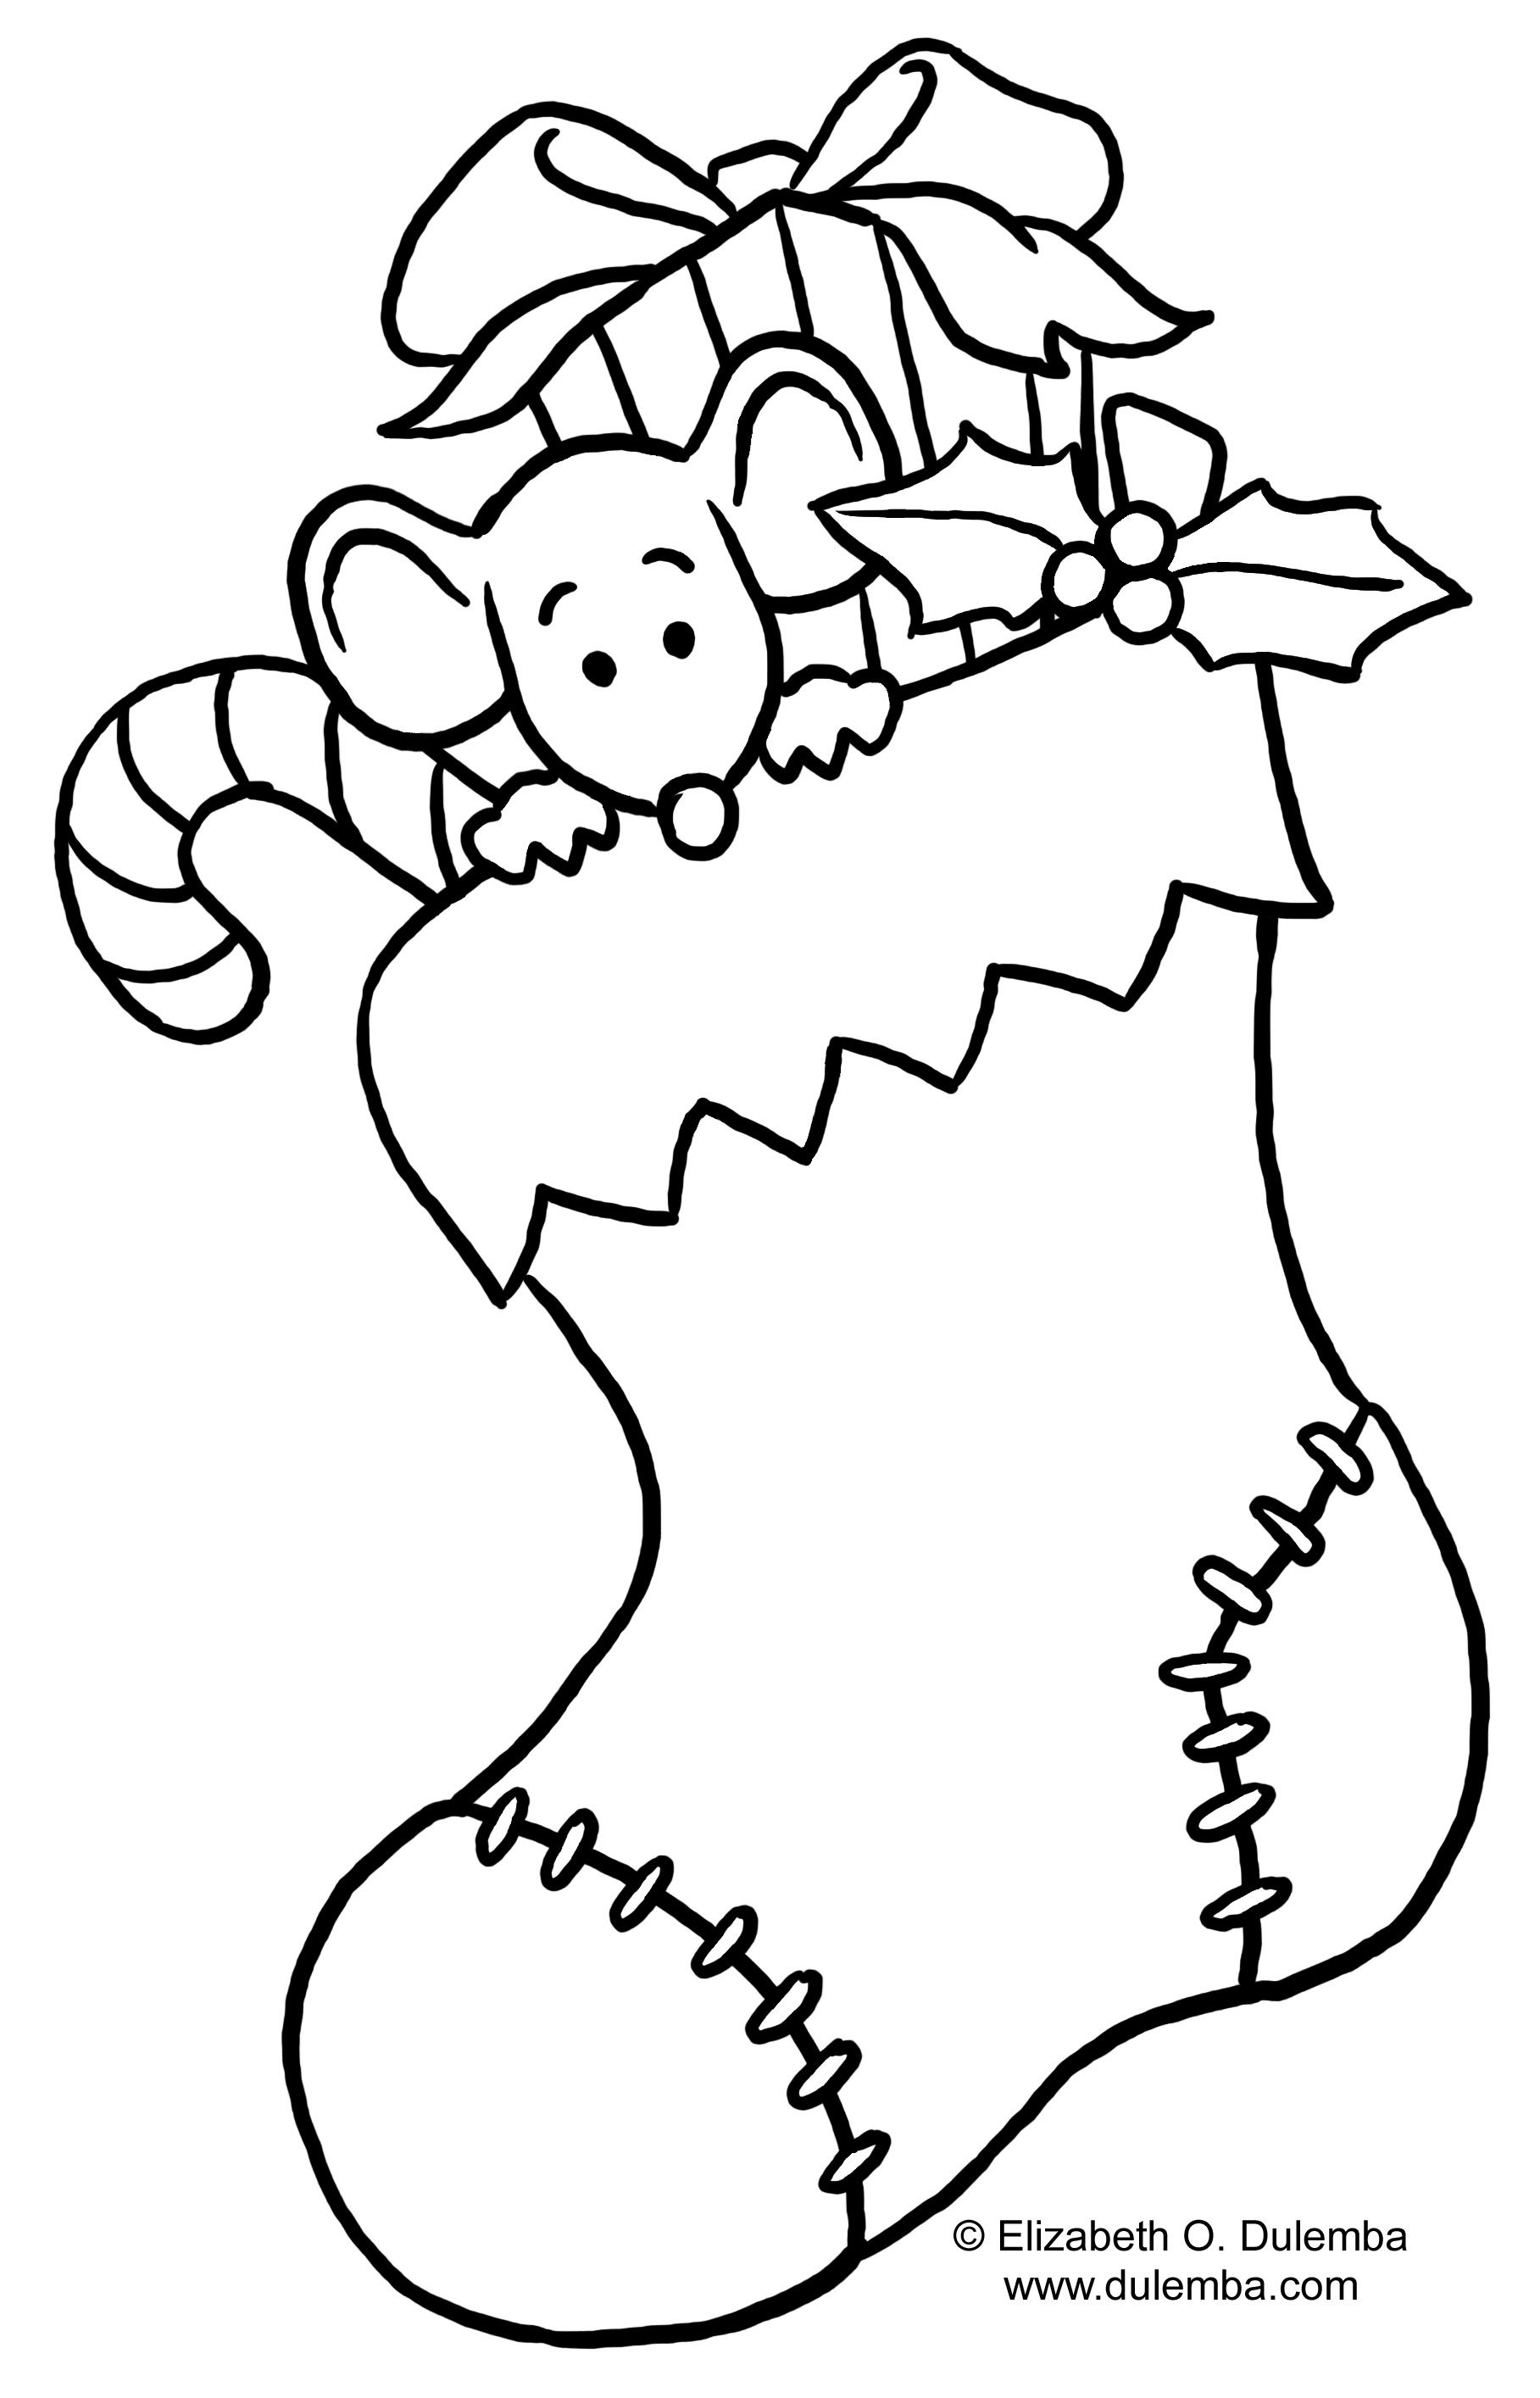 Coloring pages christmas tree blank christmas tree coloring pages - Http Www Justcoloring Com Images Christmas Coloring